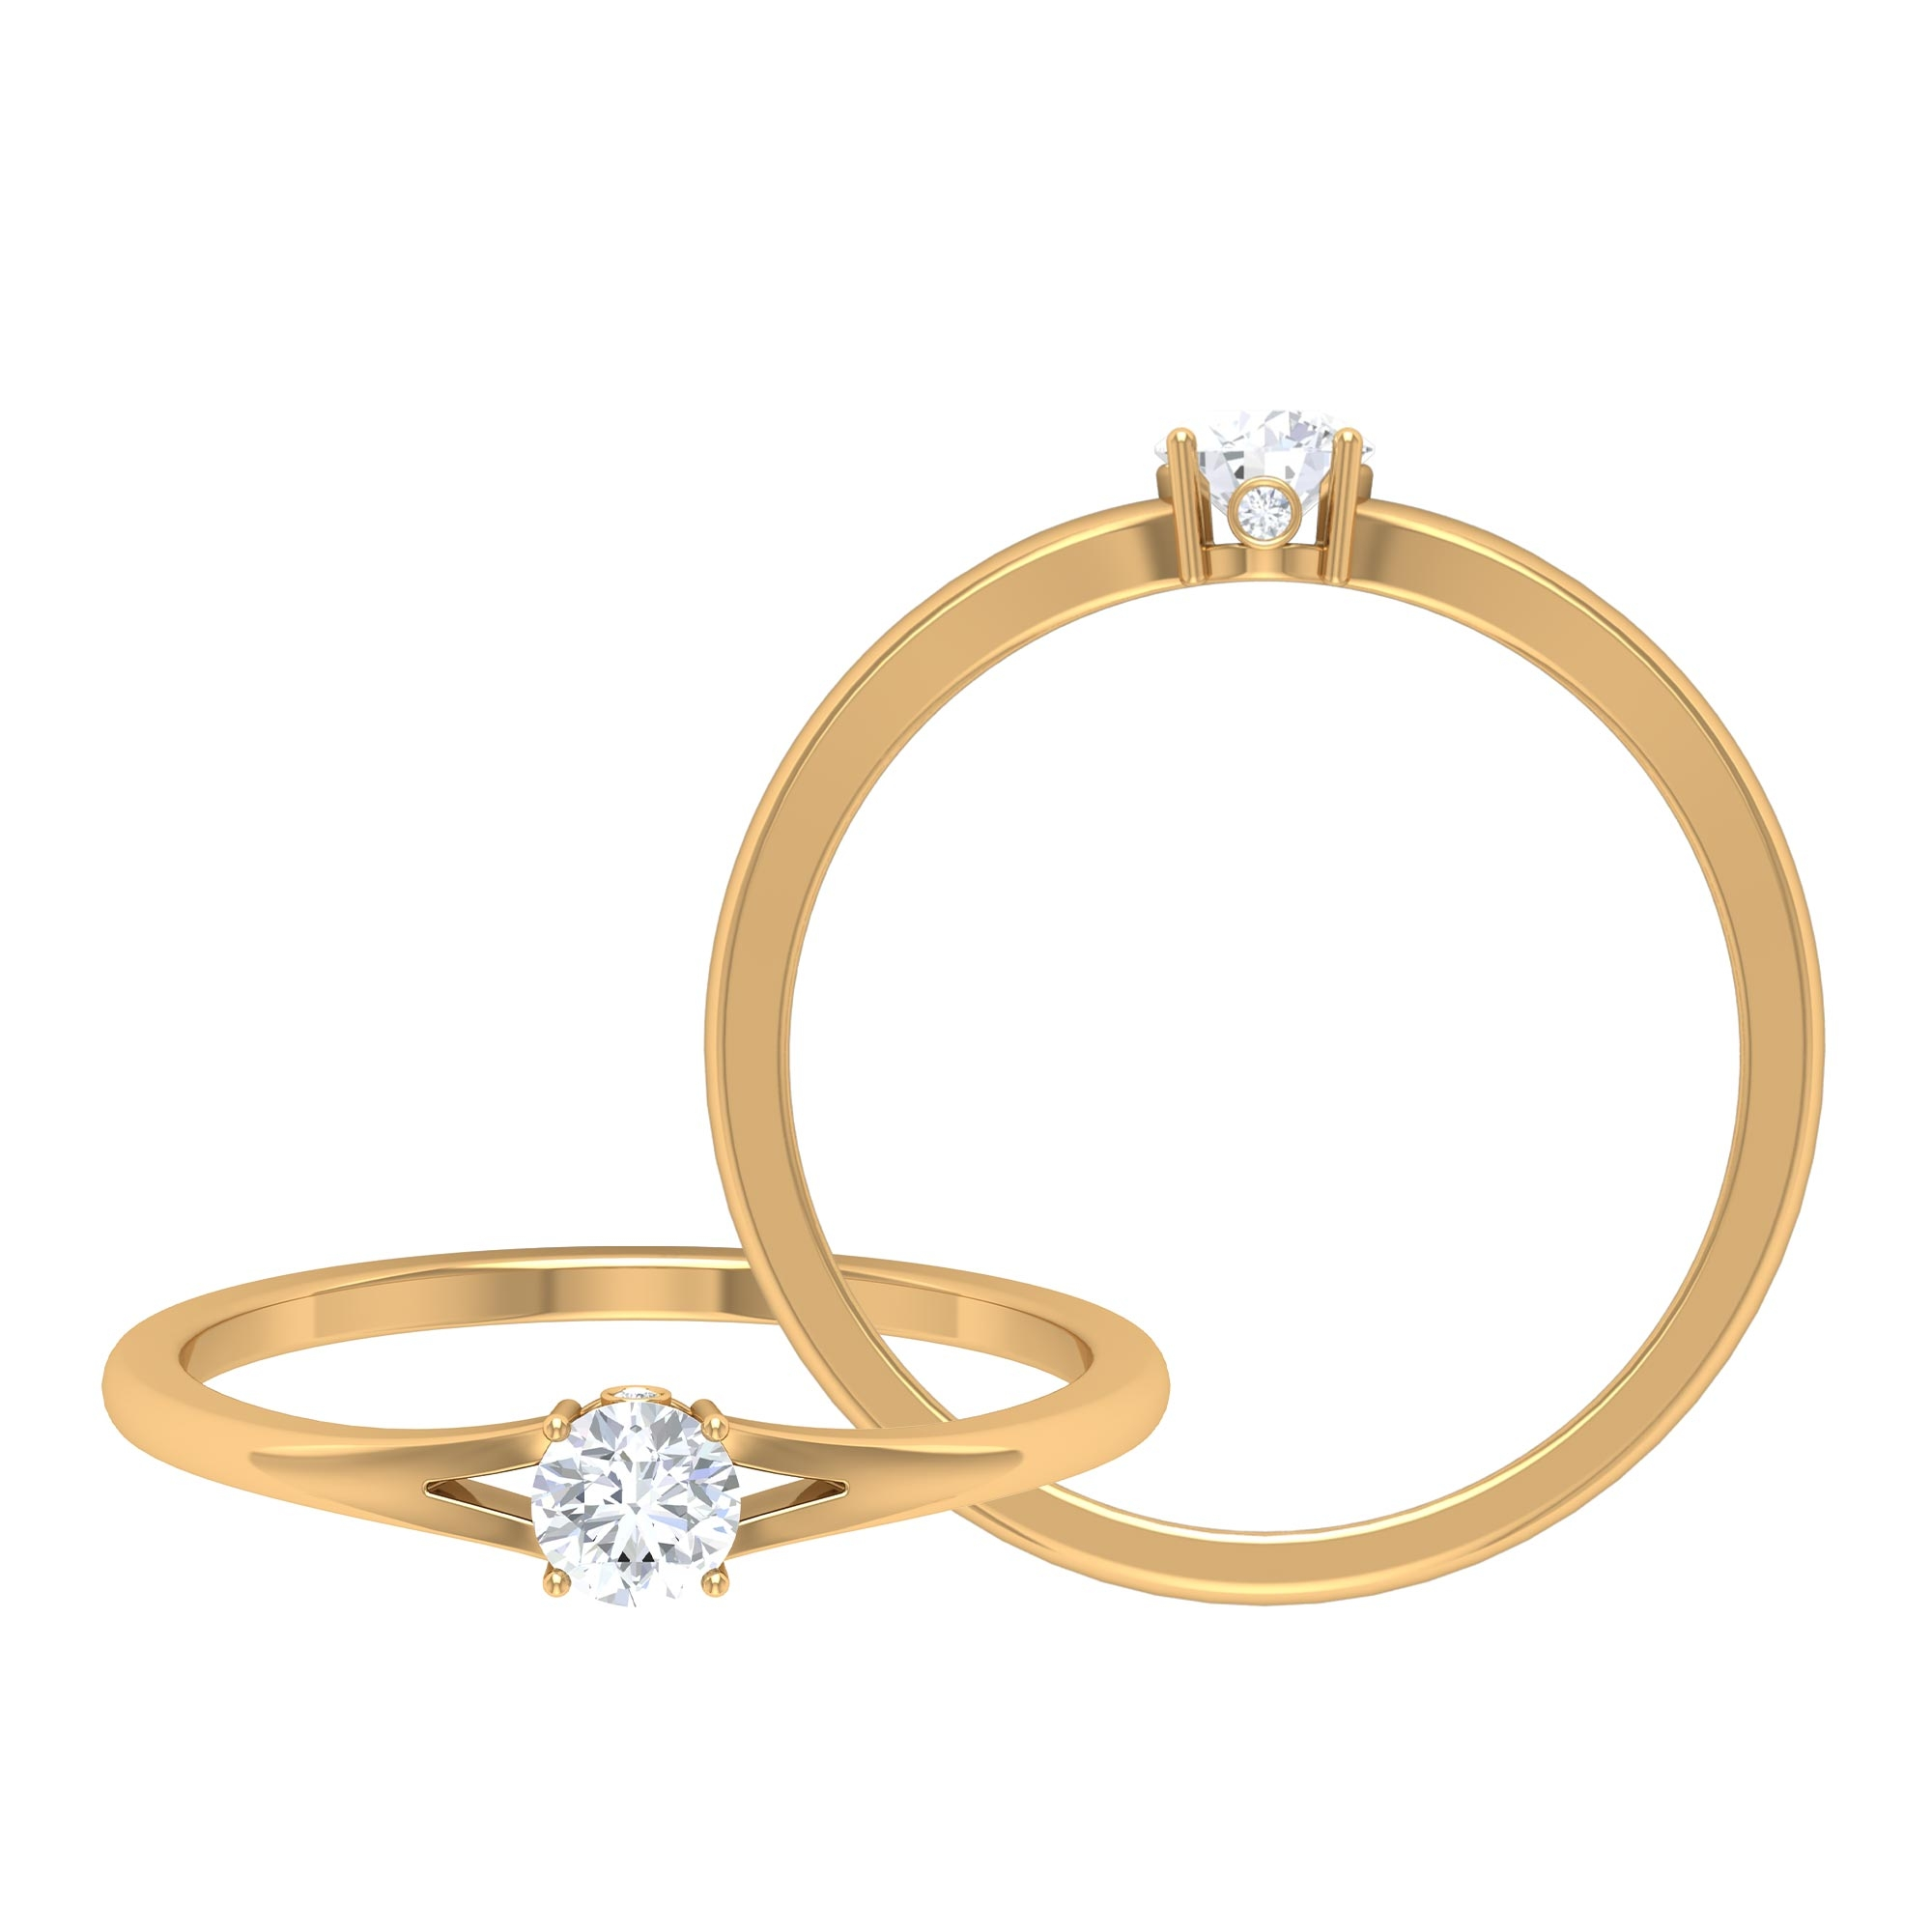 1/4 CT Round Cut Diamond Solitaire Ring in Prong Setting and Surprise Style with Split Shank